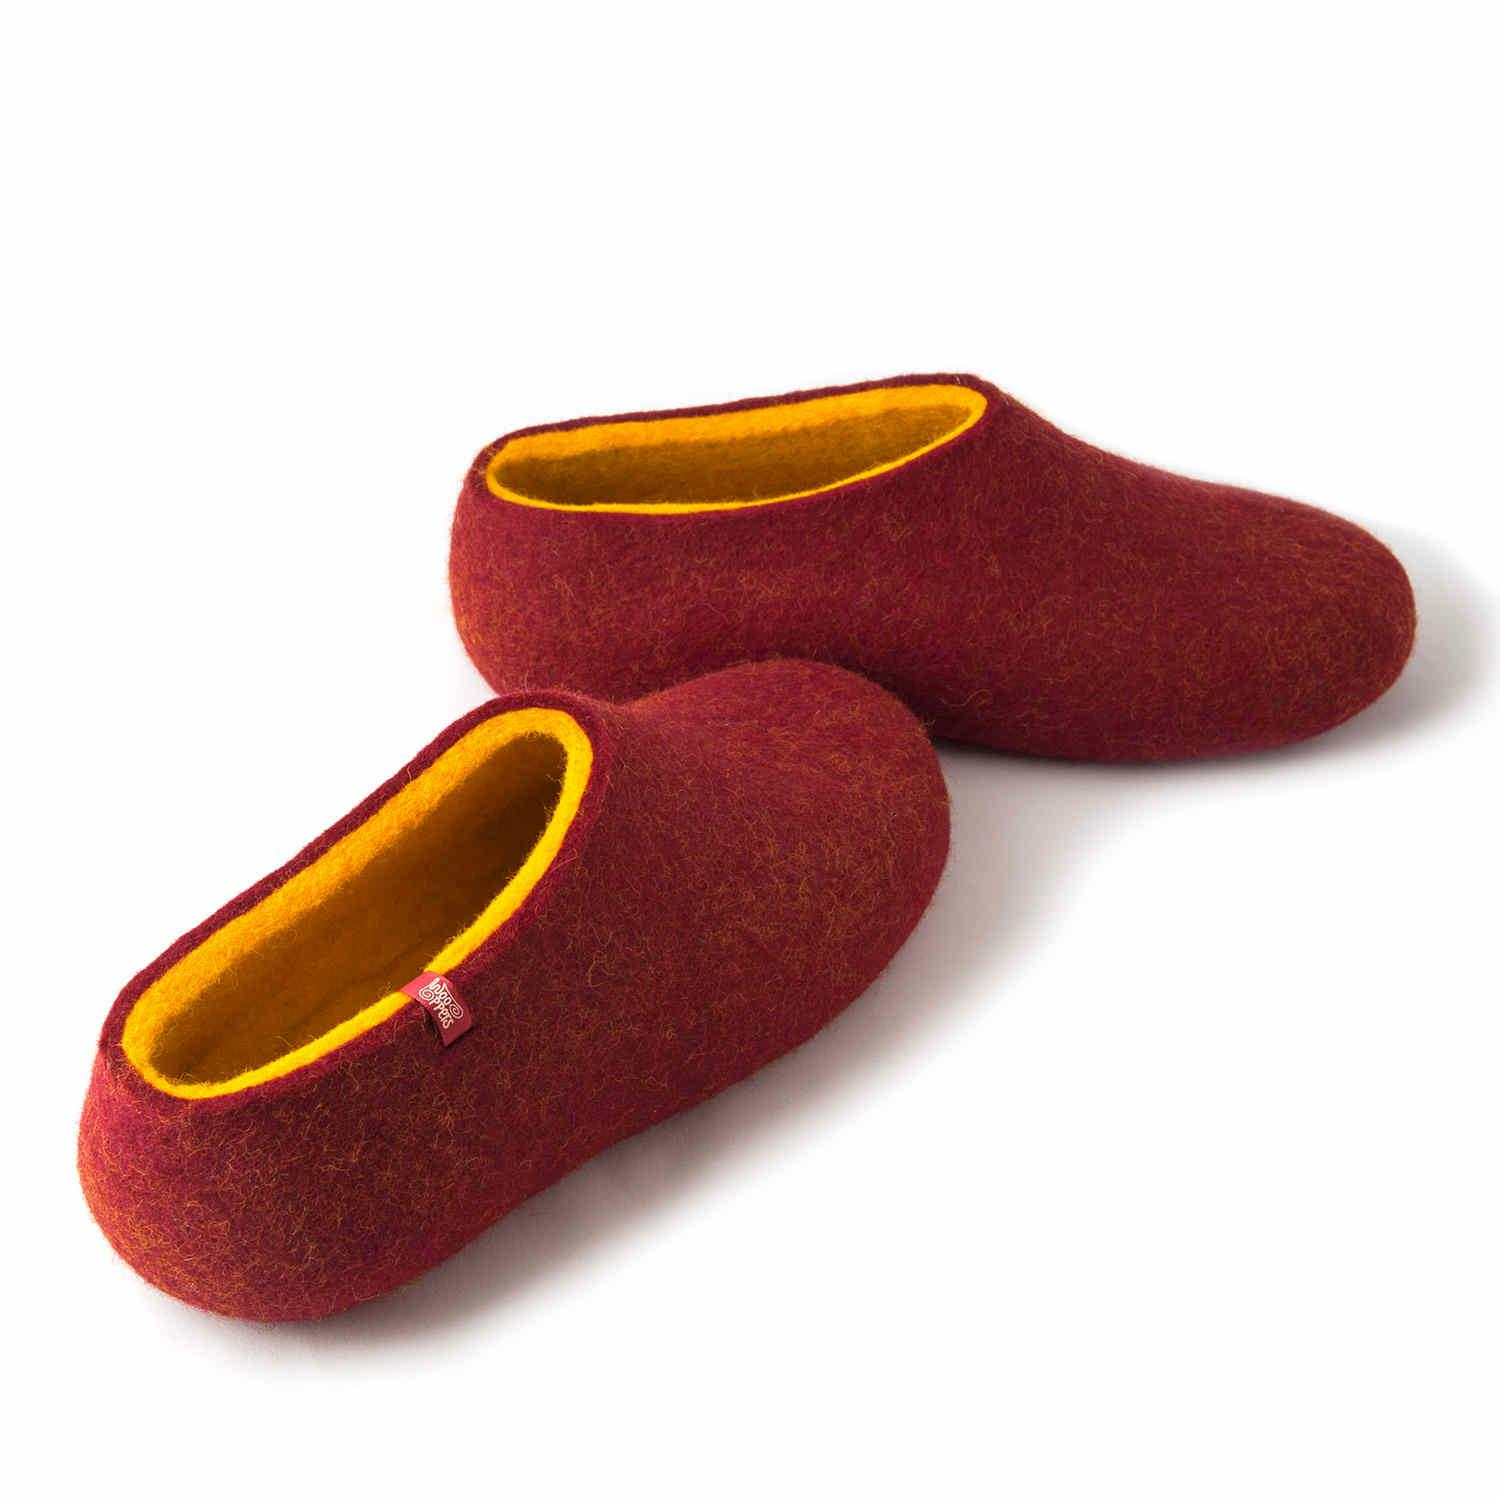 98a66b774f086 Wooppers felt slippers DUAL RED yellow